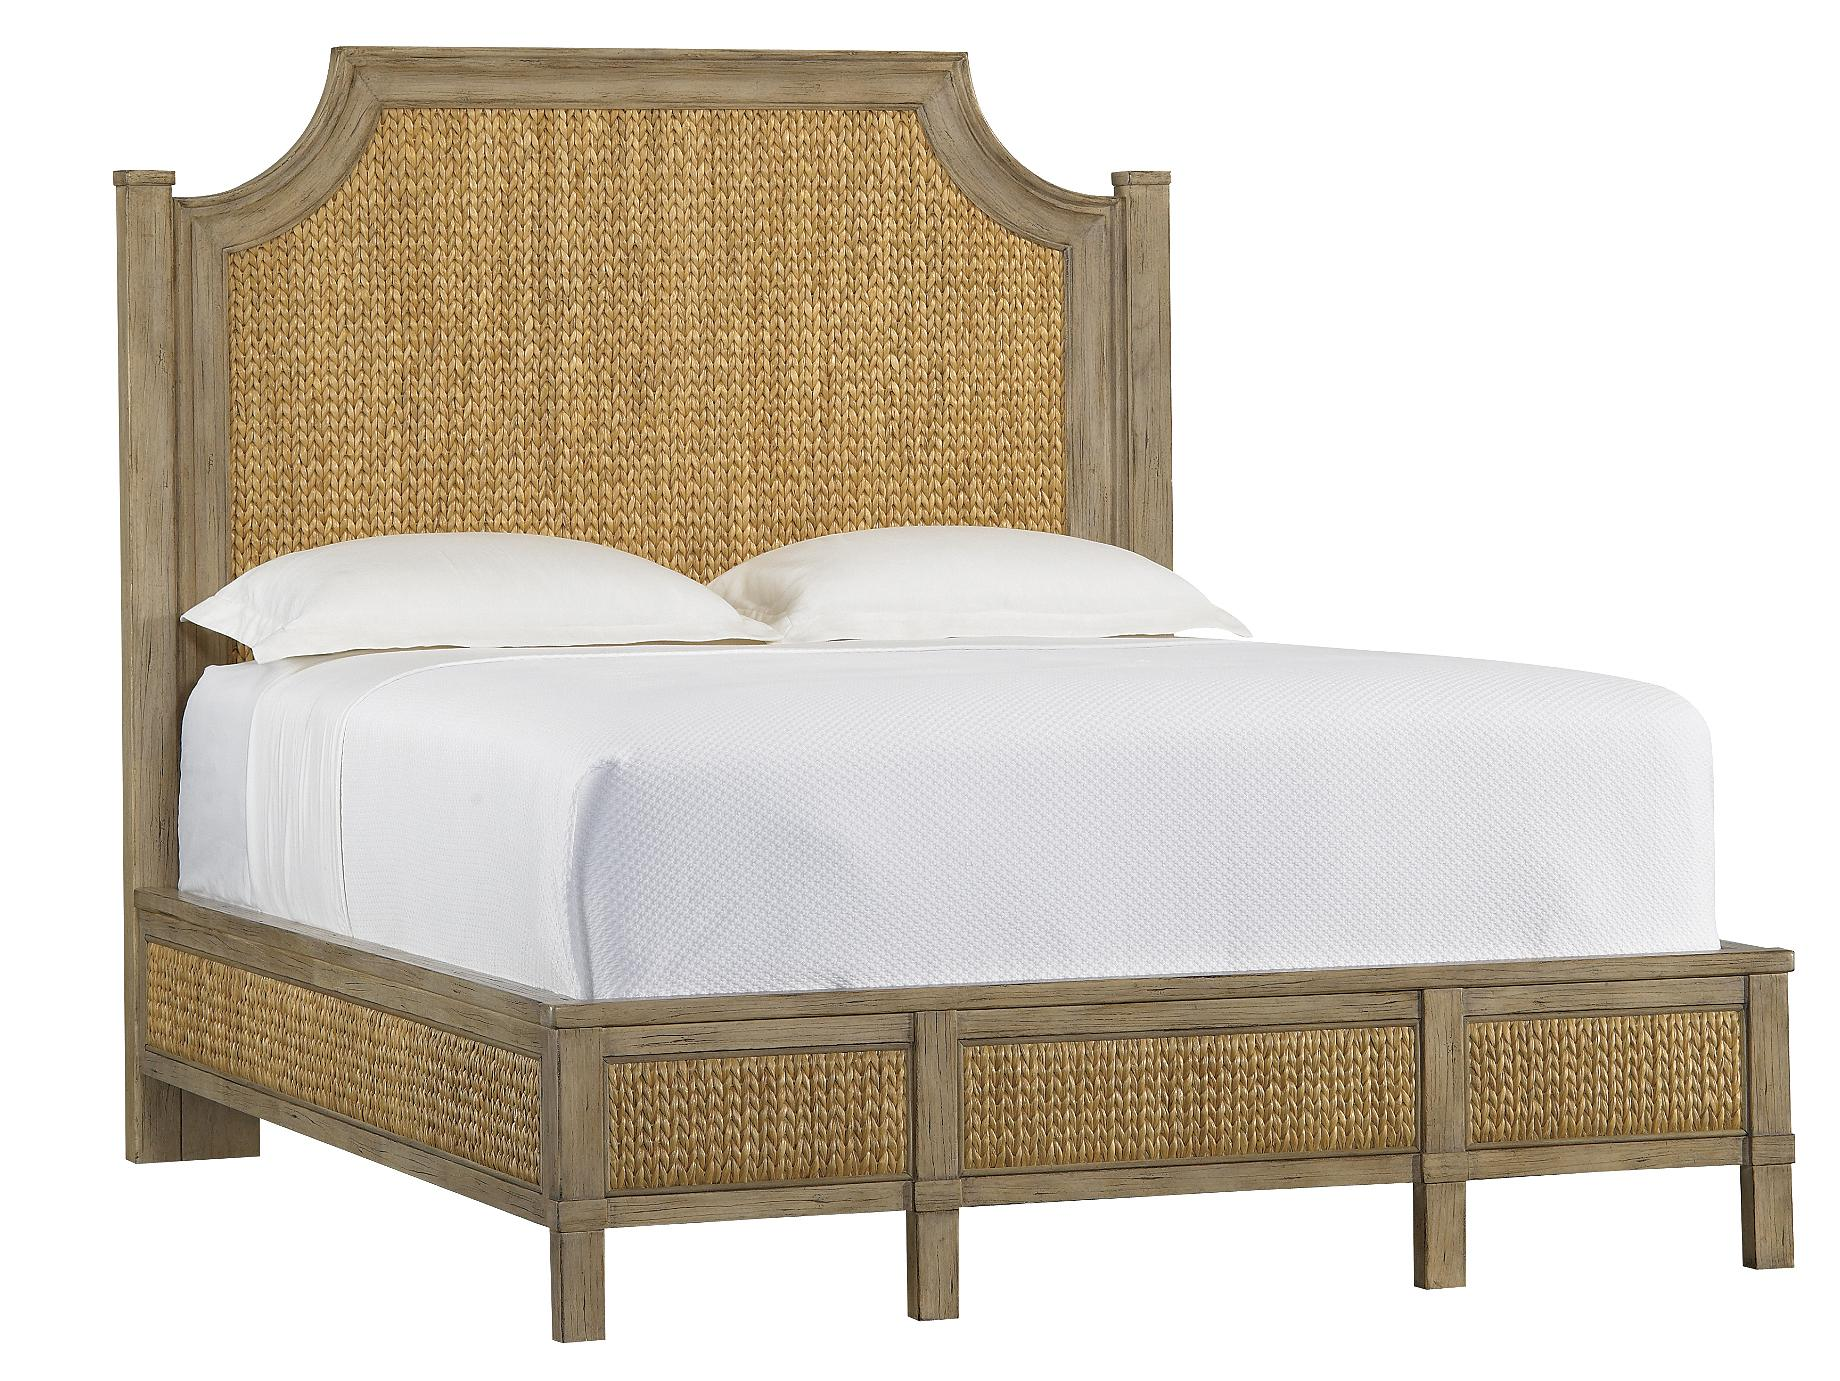 Stanley Furniture Coastal Living Resort California King Water Meadow Woven Bed - Item Number: 062-73-49